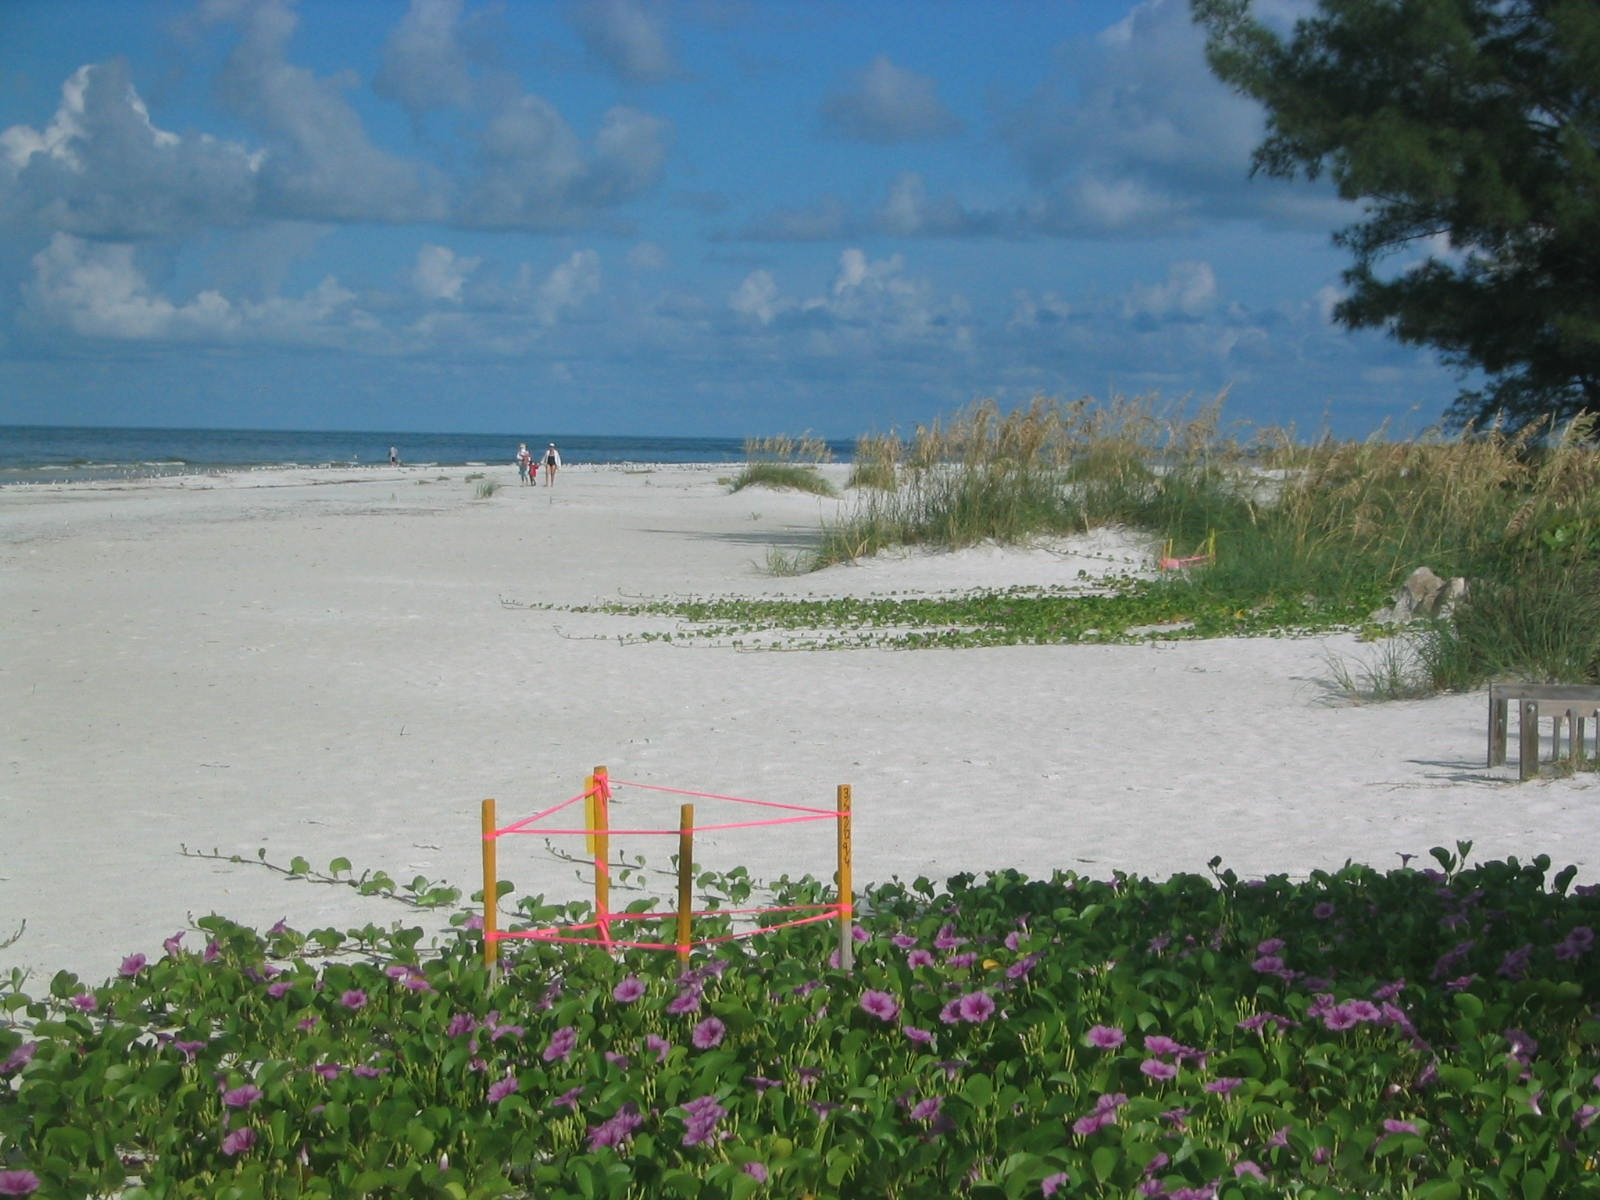 Sea Turtle nest staked for protection and observation by Turtle Watch on Anna Maria Island